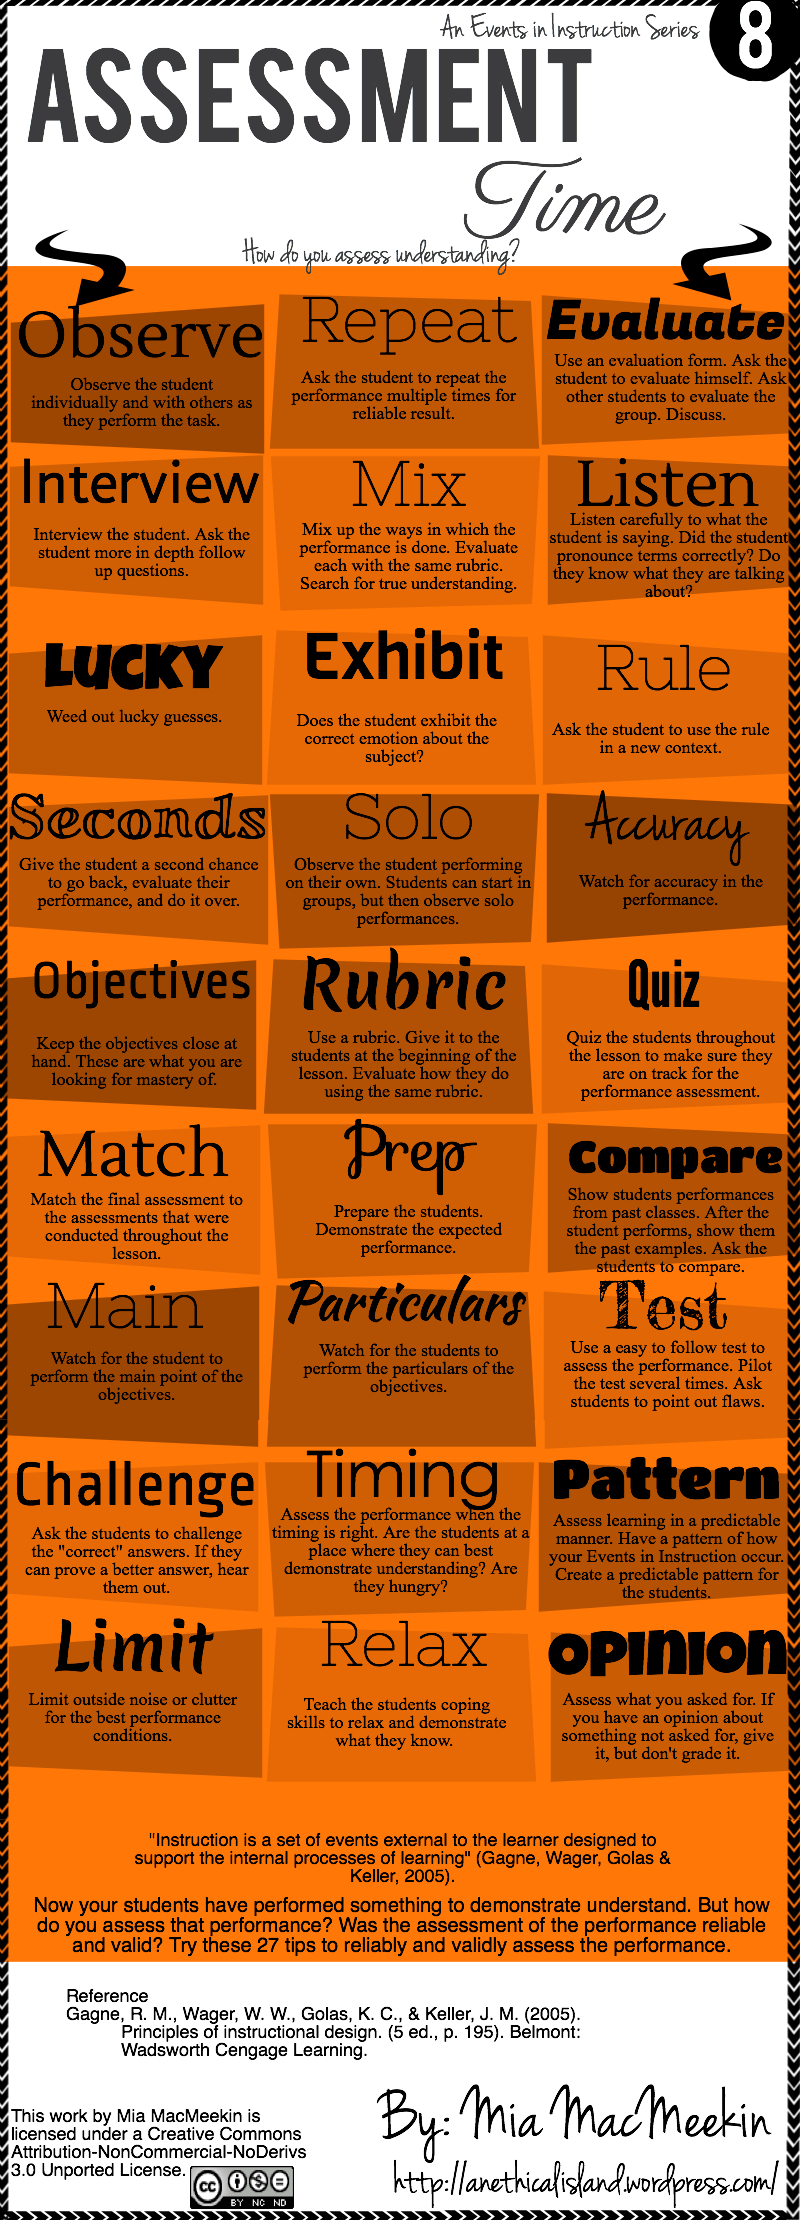 math methodology assessment essay how can teachers assess students understanding infographic